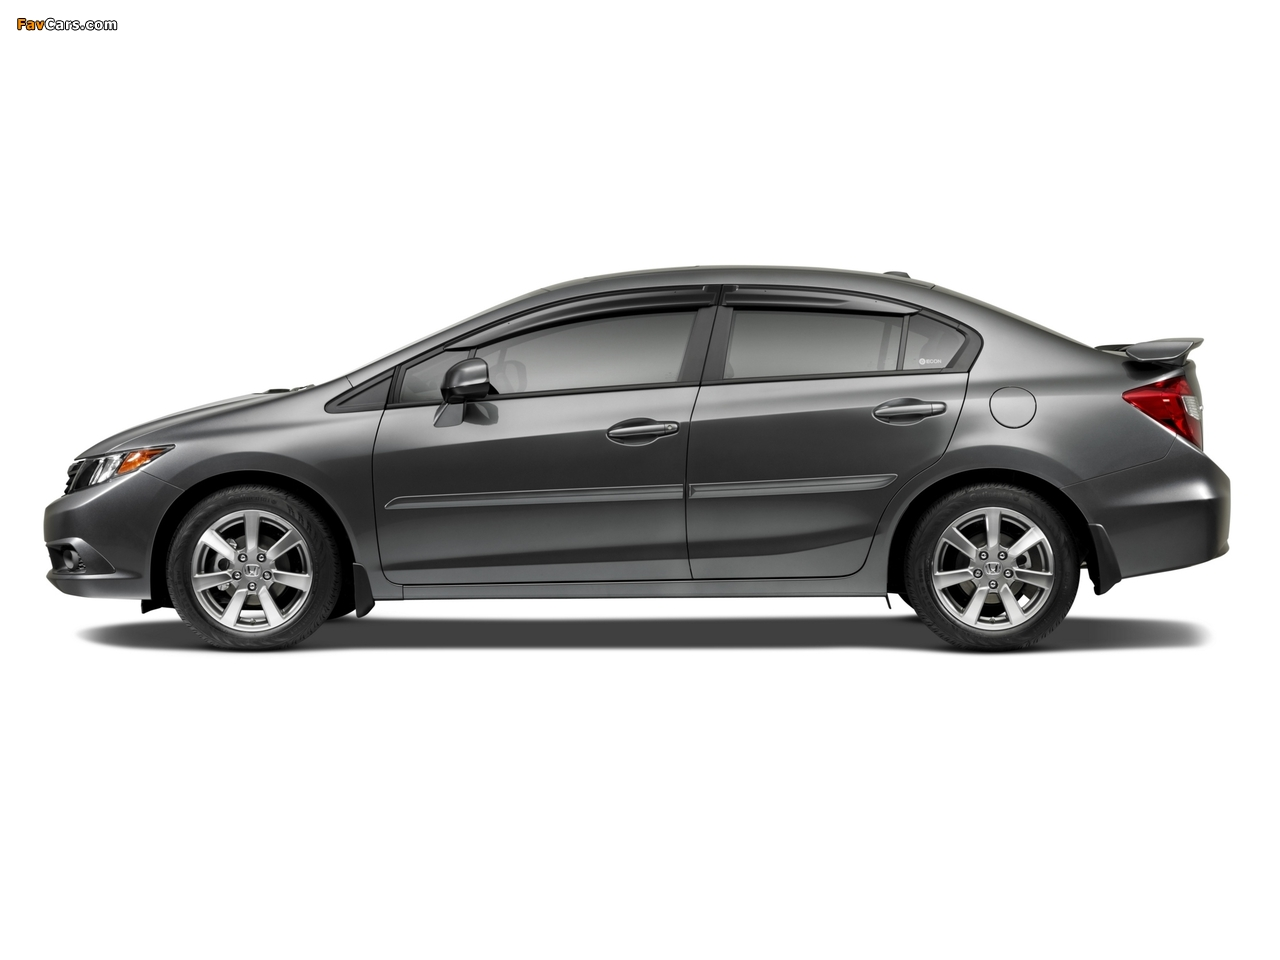 Honda Civic Si Sedan With Honda Genuine Accessories 2011